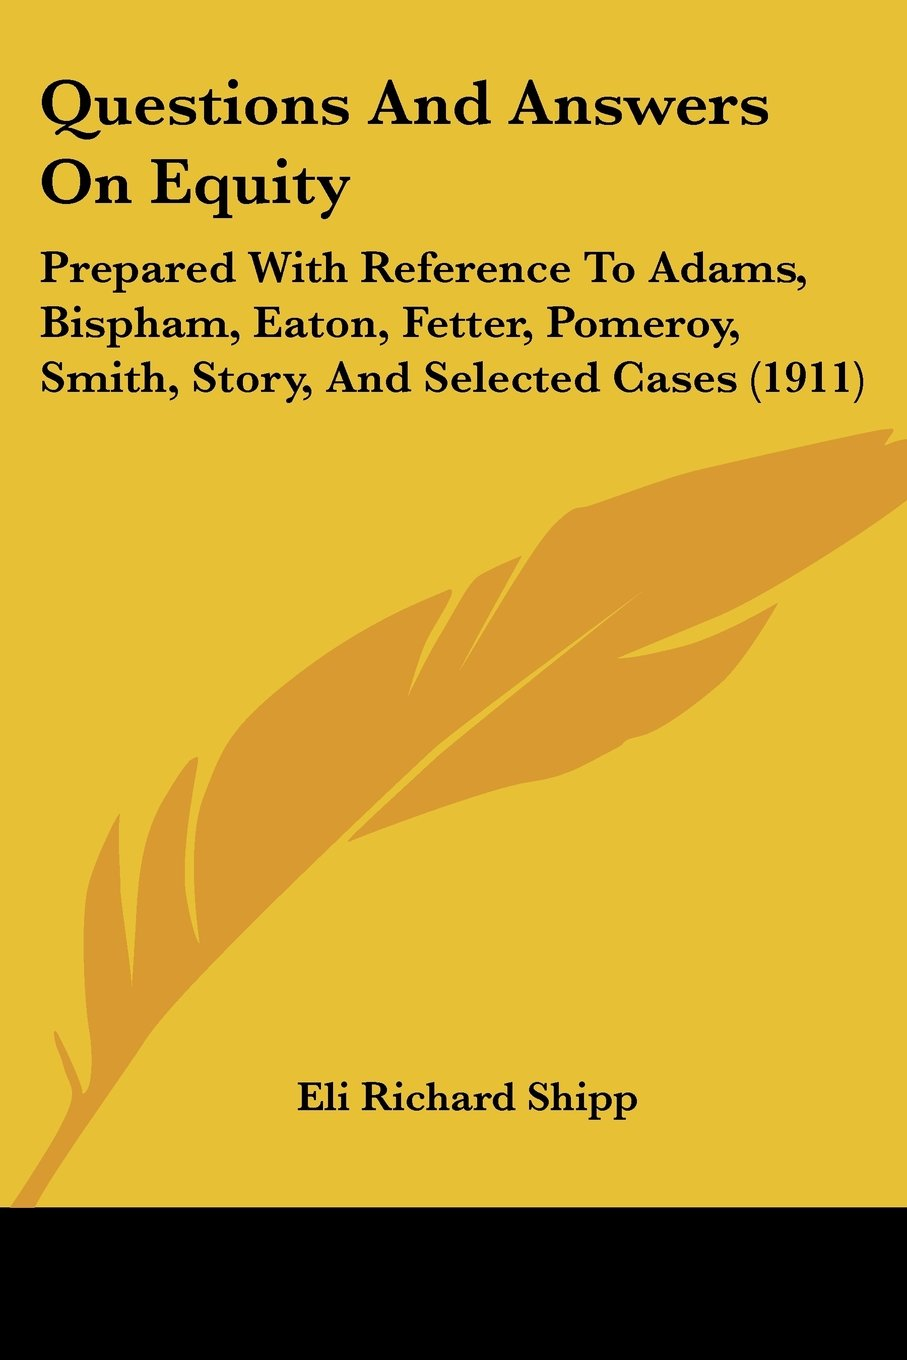 Questions And Answers On Equity: Prepared With Reference To Adams, Bispham, Eaton, Fetter, Pomeroy, Smith, Story, And Selected Cases (1911) pdf epub